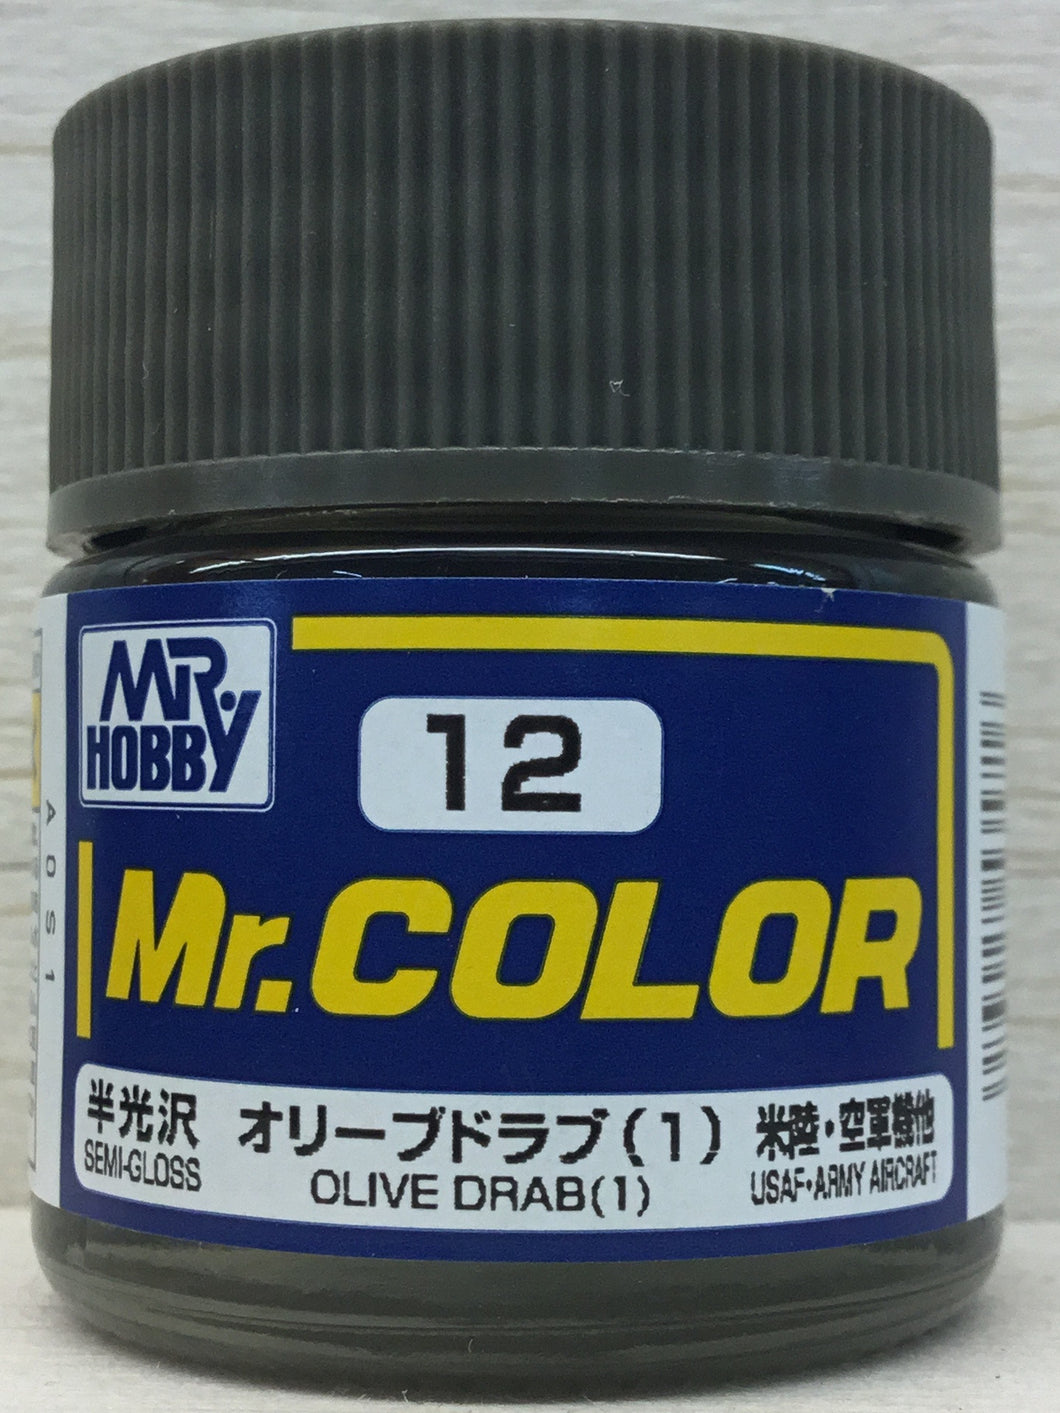 GUNZE MR COLOR C12 SEMI GLOSS OLIVE DRAB 1